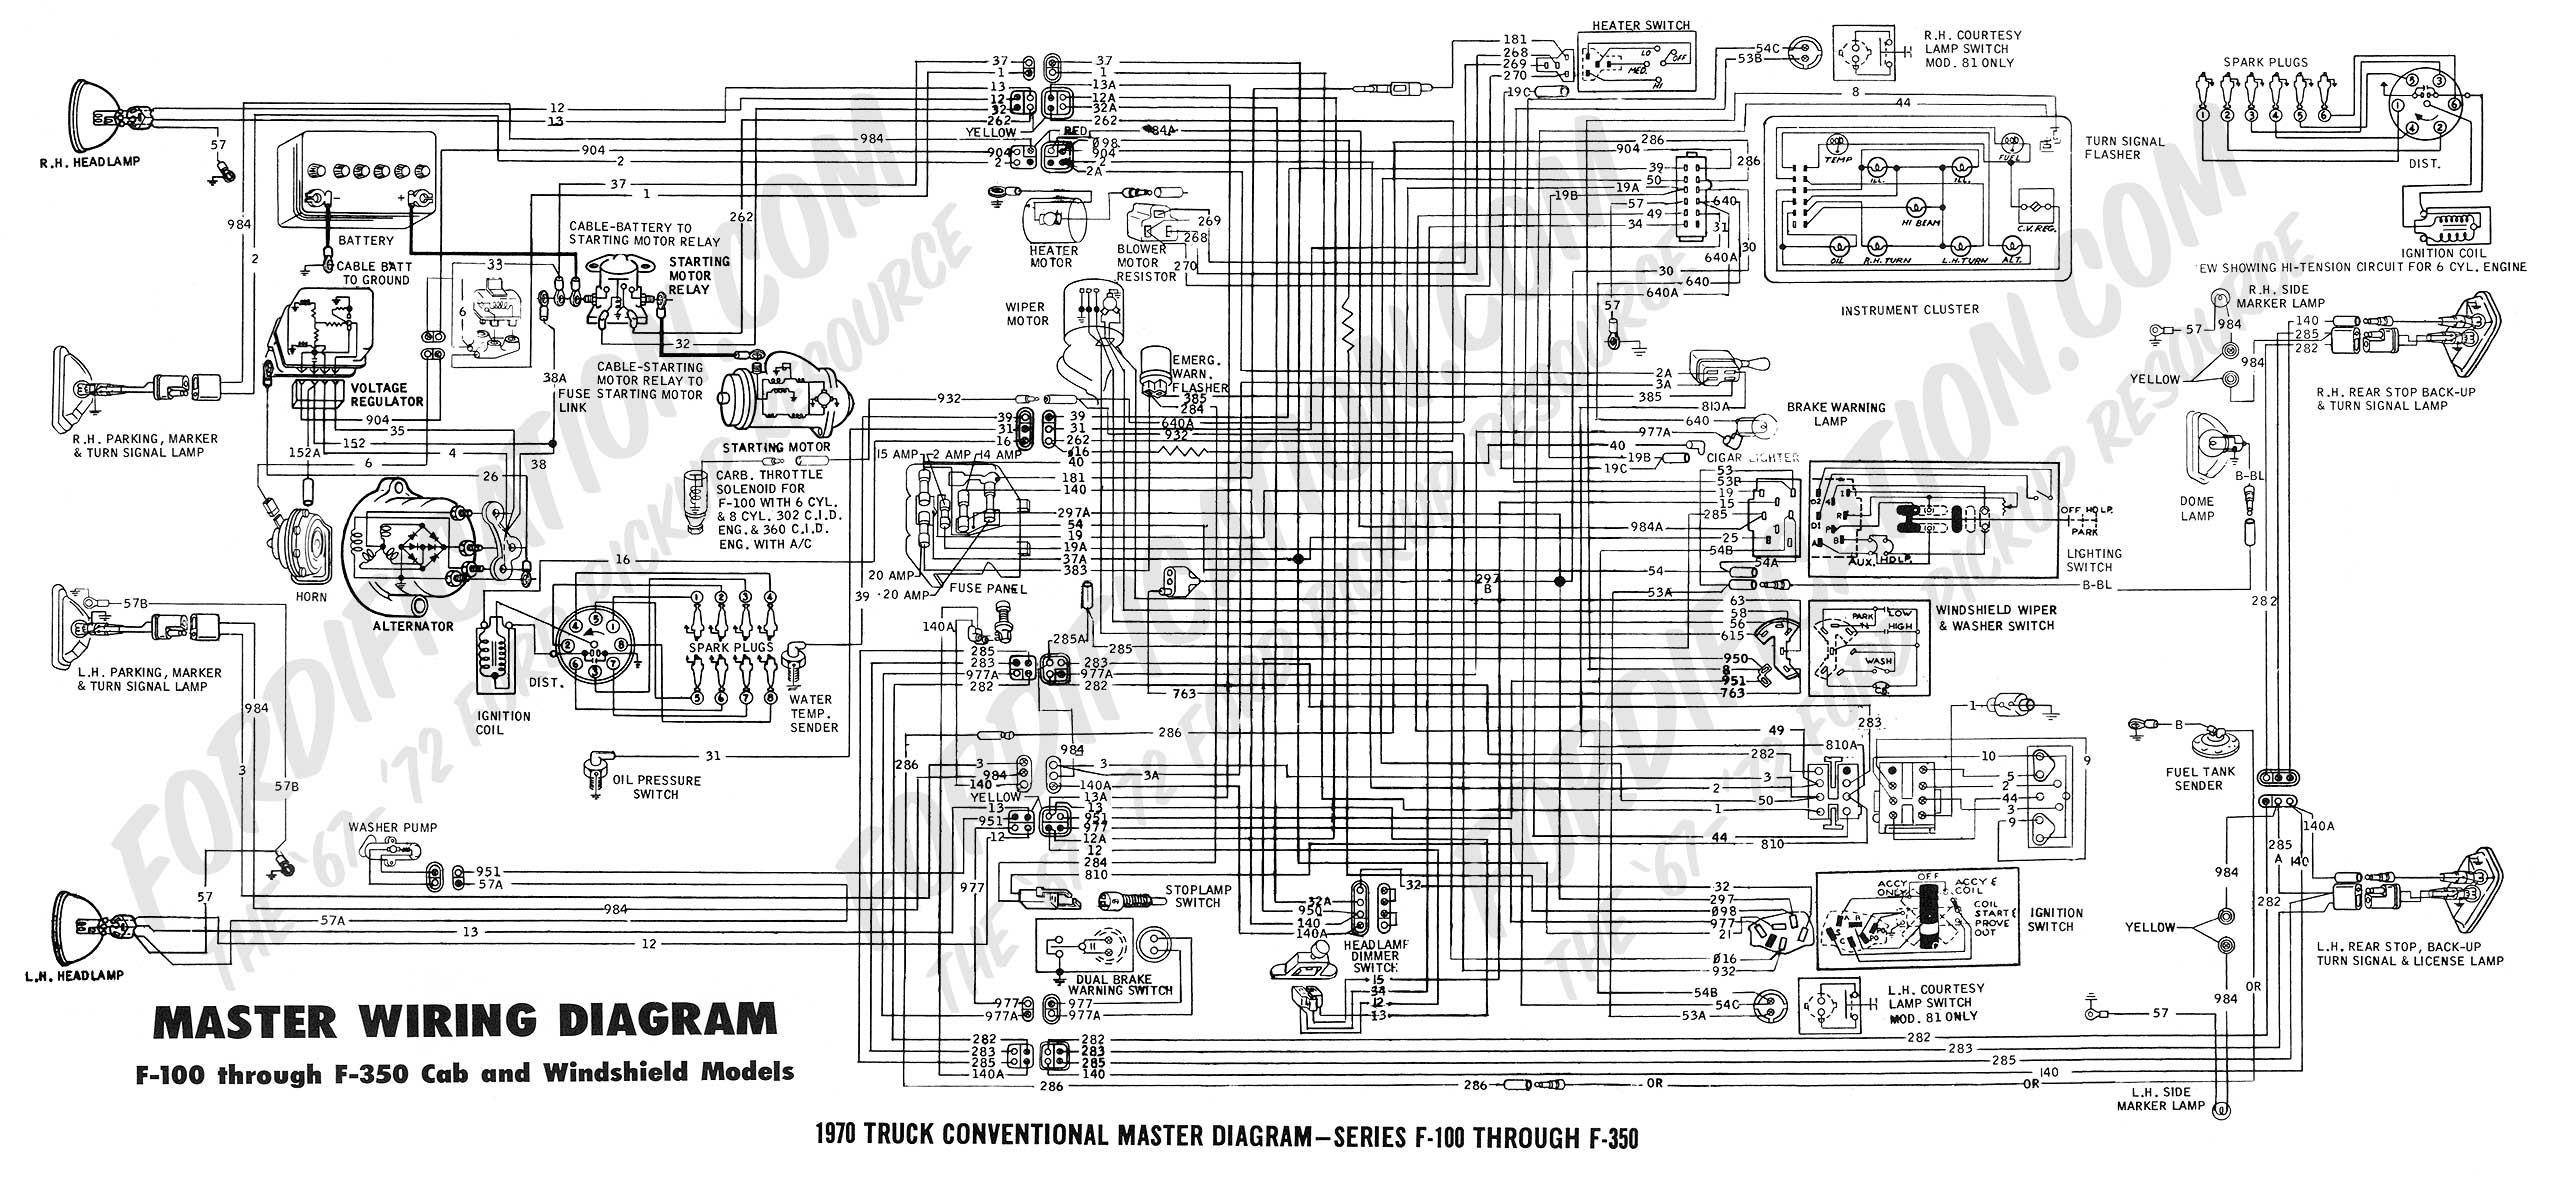 wiring diagram 70_master f450 wiring diagram pto wiring diagram f450 \u2022 wiring diagrams j  at aneh.co